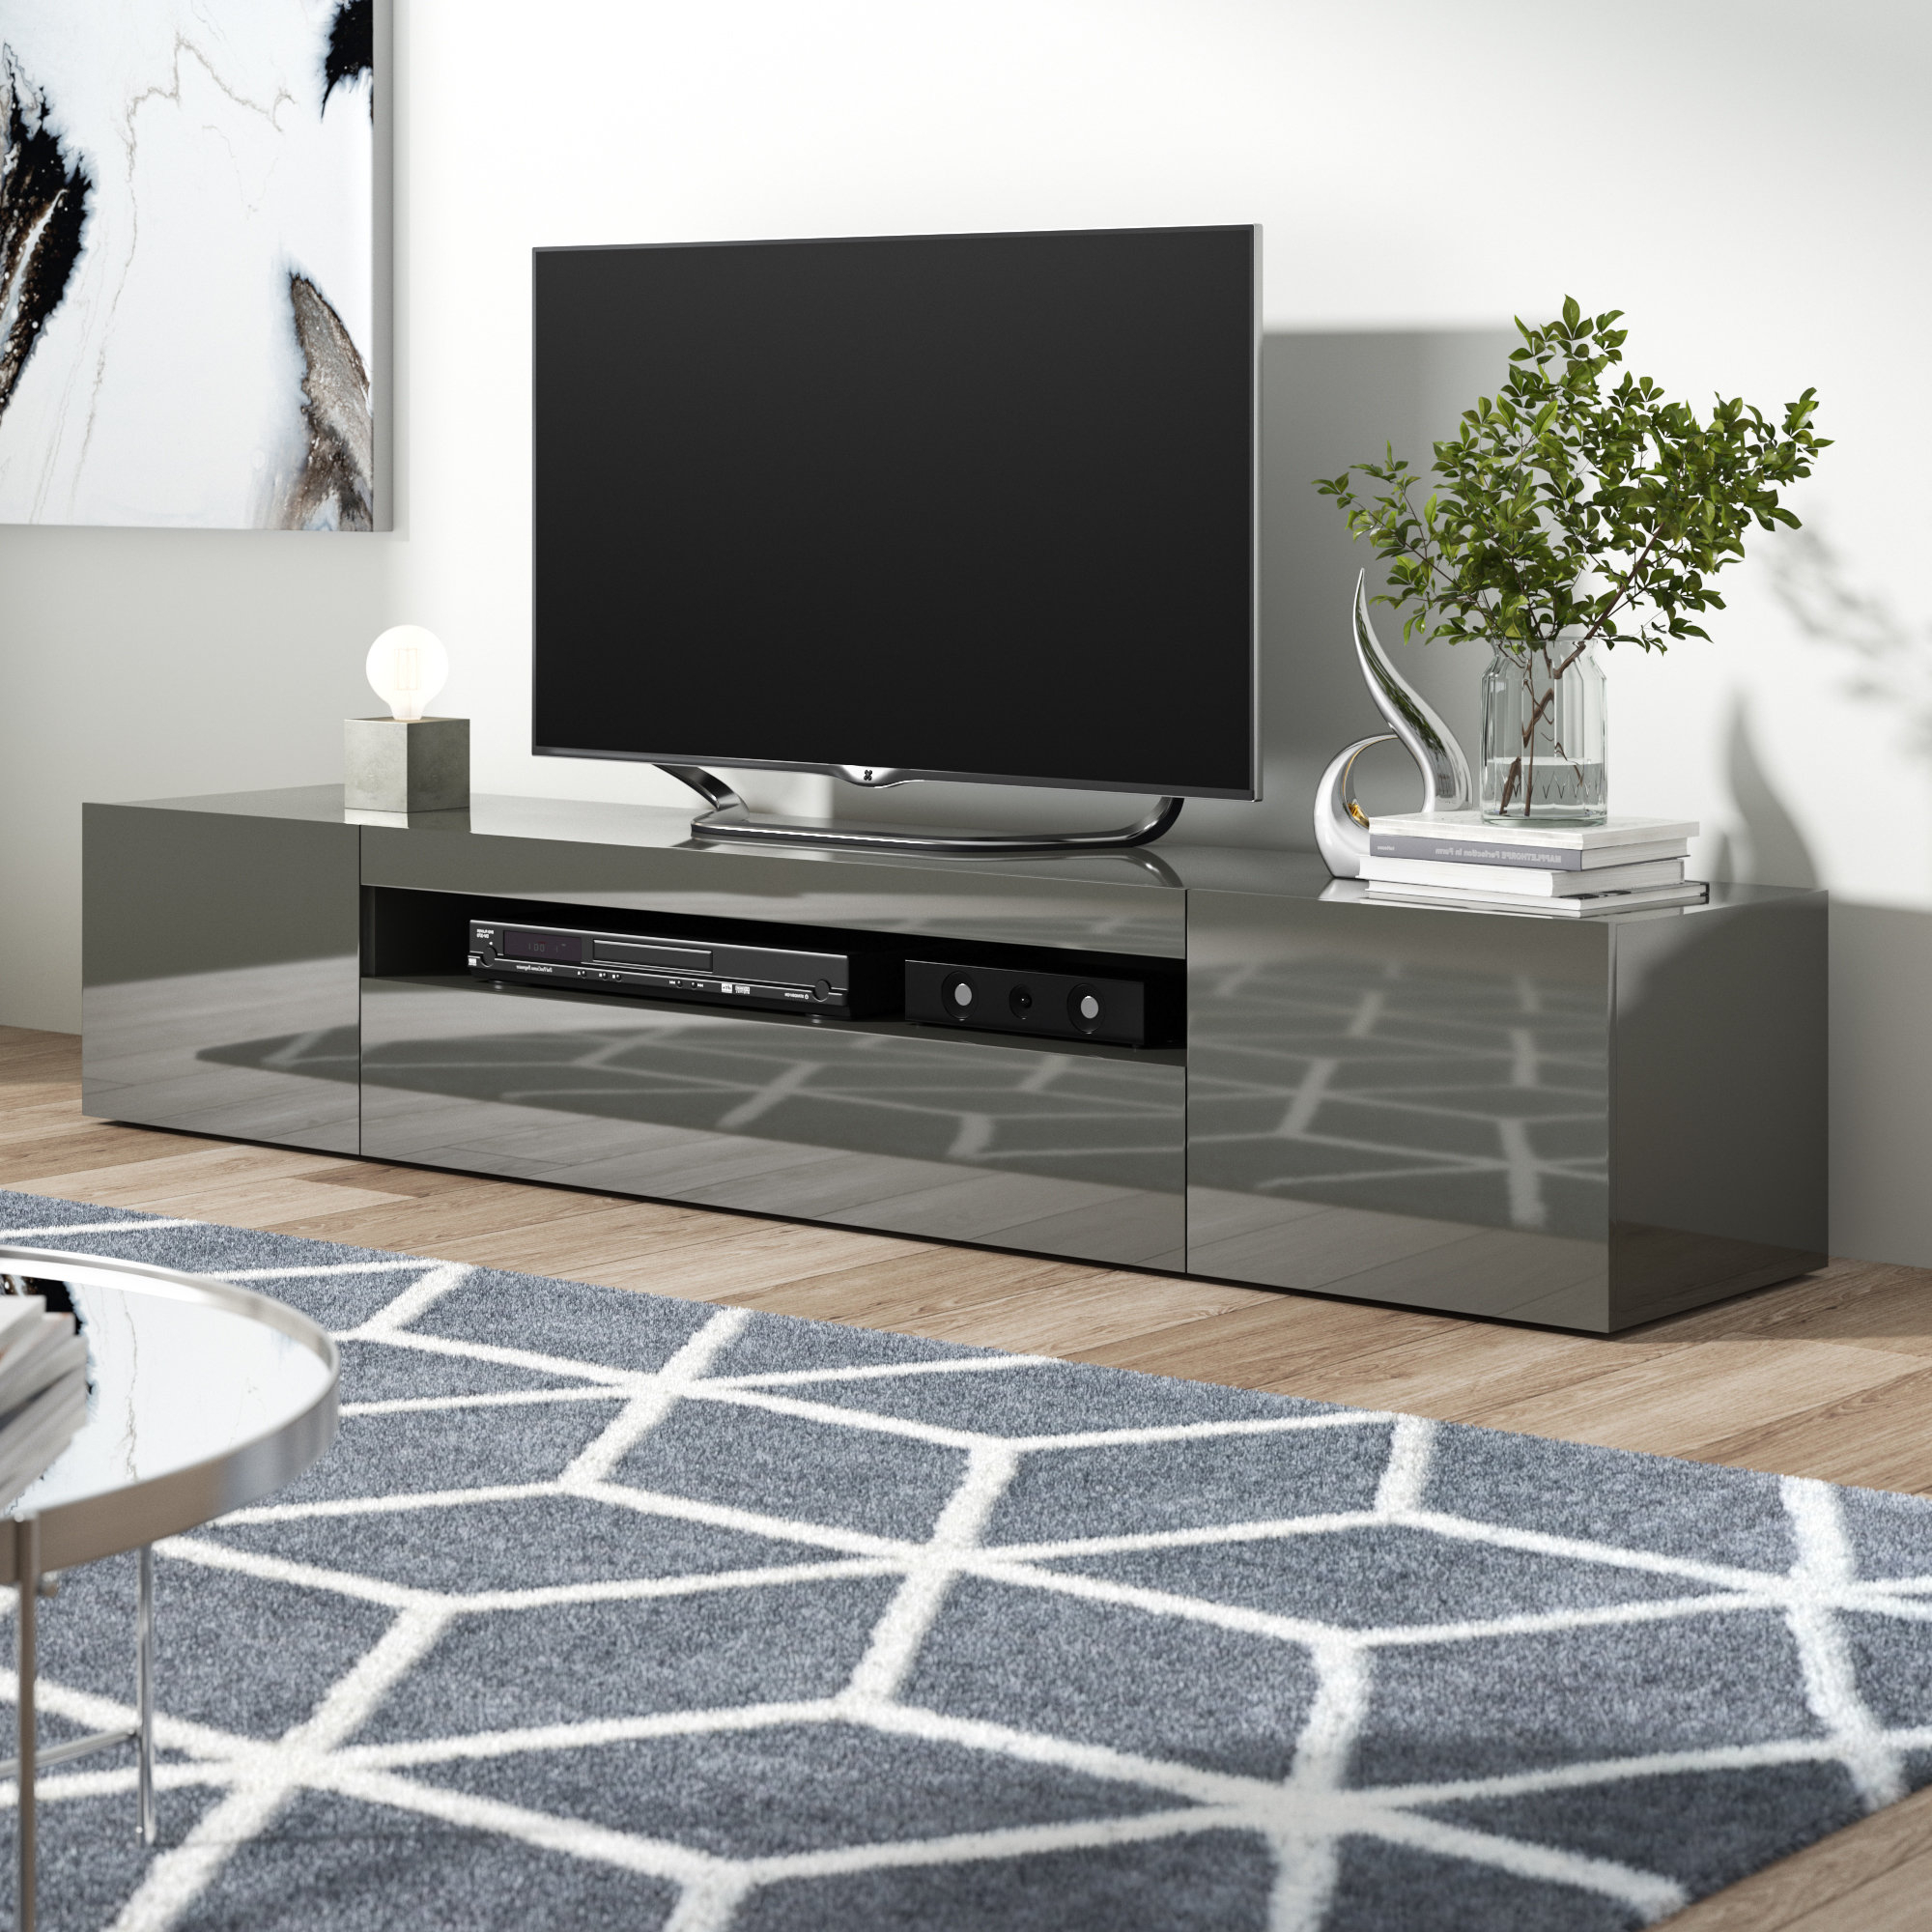 Most Popular Modern Tv Stands You'll Love (View 11 of 20)